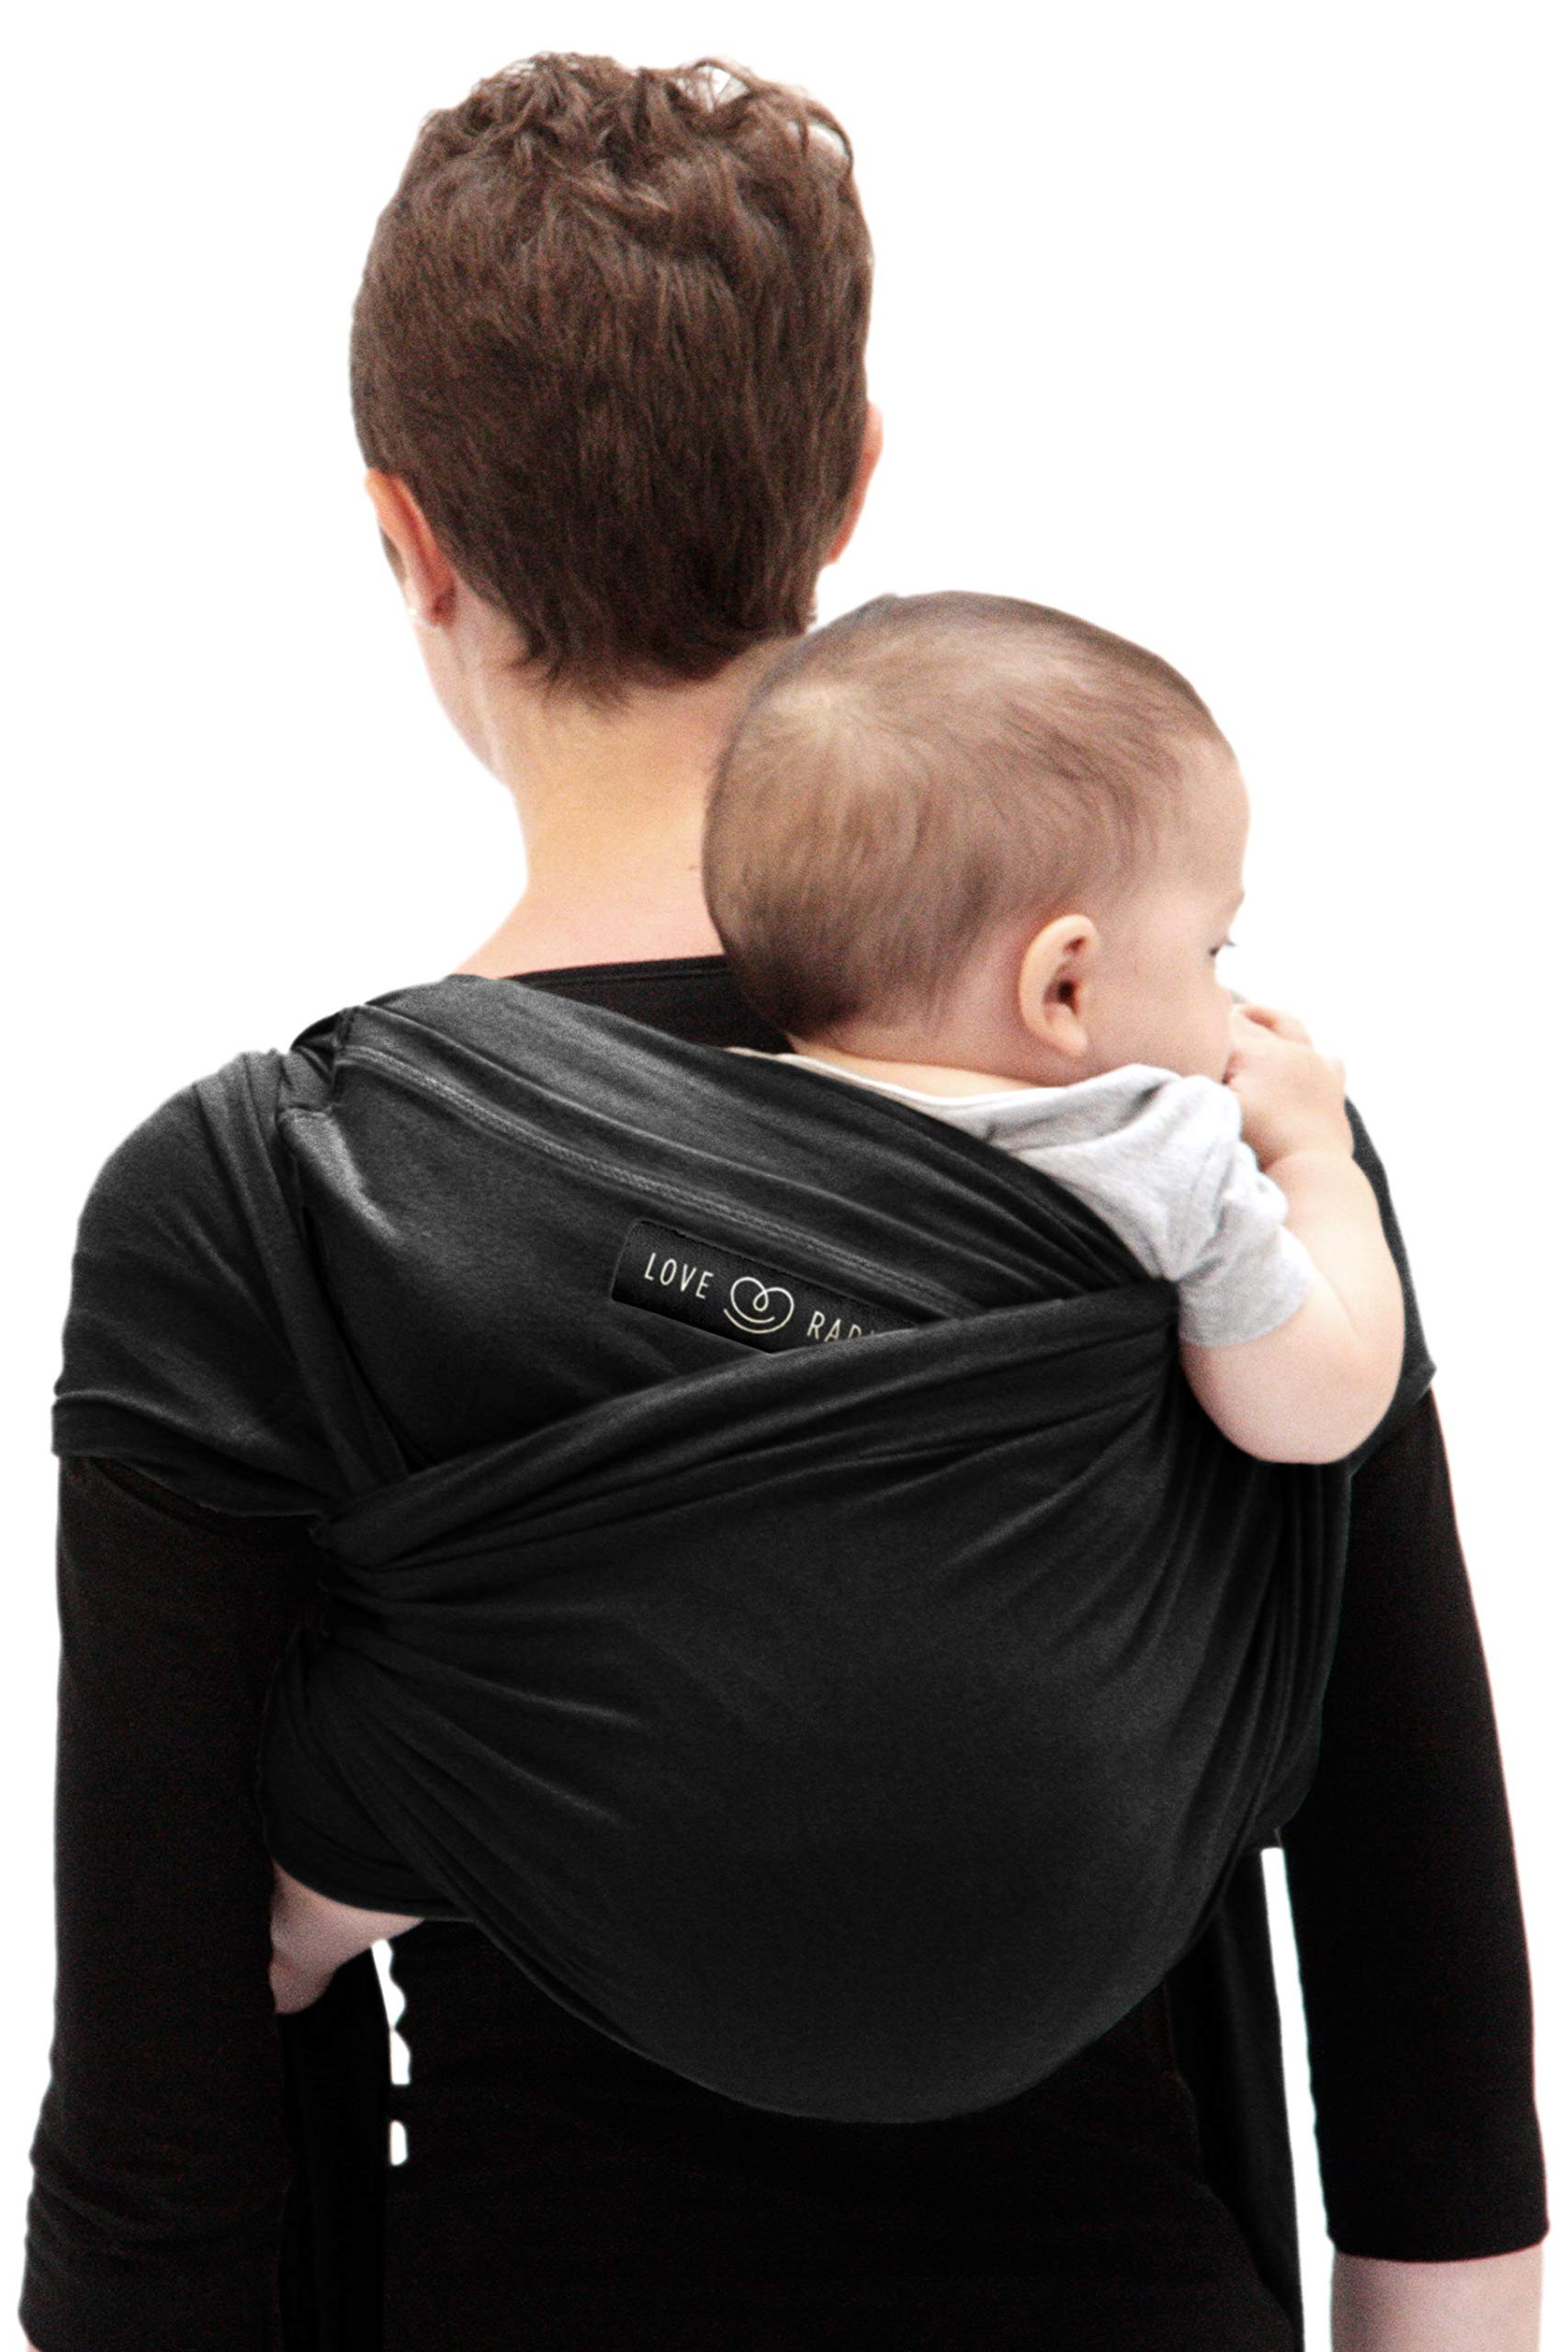 Je Porte Mon Bébé L'Originale Baby Sling Je Porte Mon Bébé High Quality Elastic Baby Carrier Dense, elastic and breathable material Great support, fits your baby's body like a second skin. 4